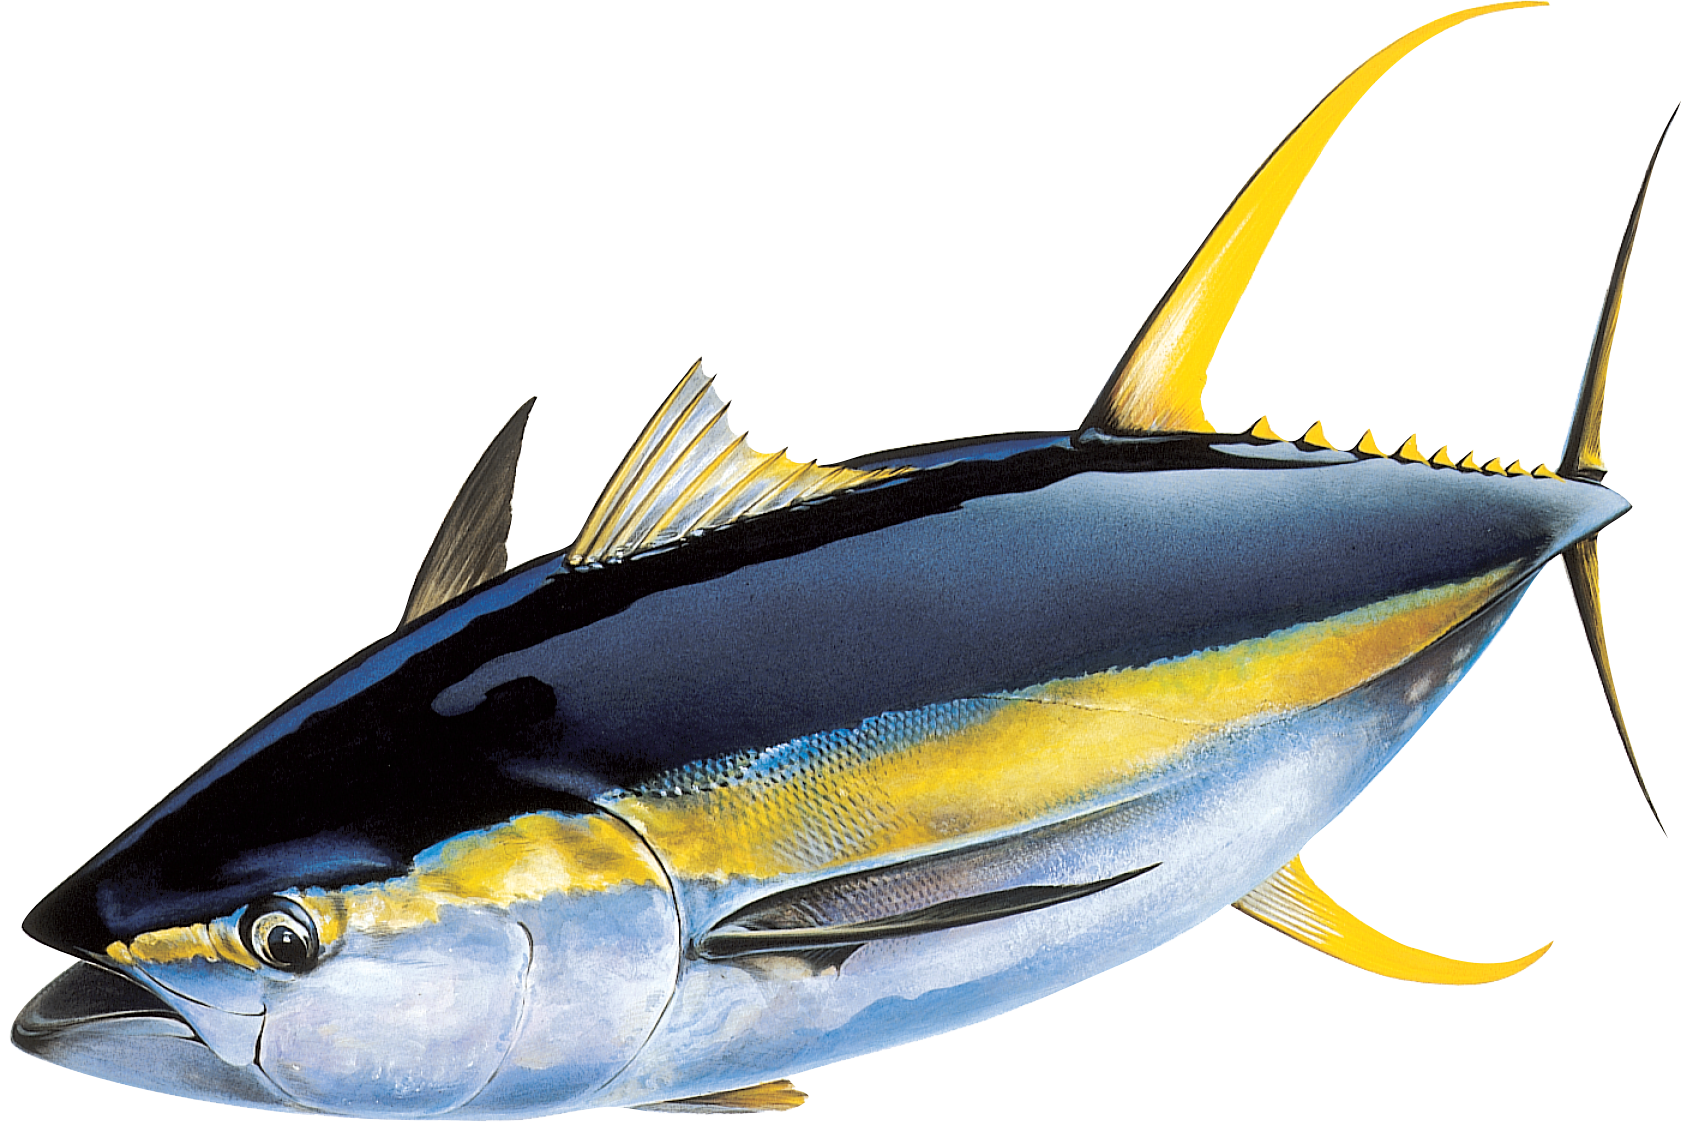 17 Best images about Yellow fin tuna on Pinterest | Fish paintings ...